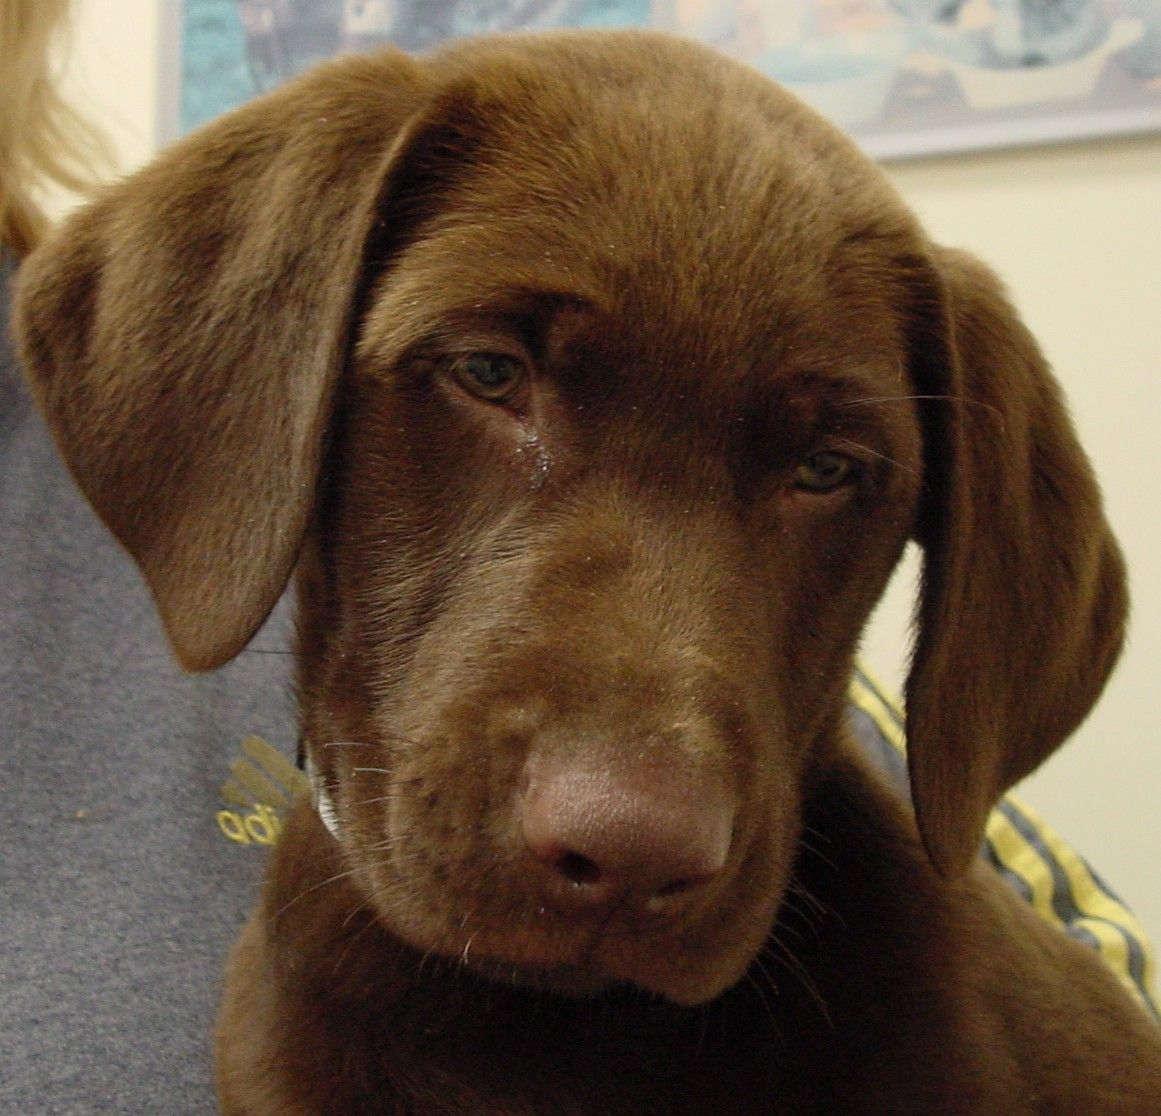 Labrador Retriever Puppies For Sale | New Jersey Puppies For Sale ...